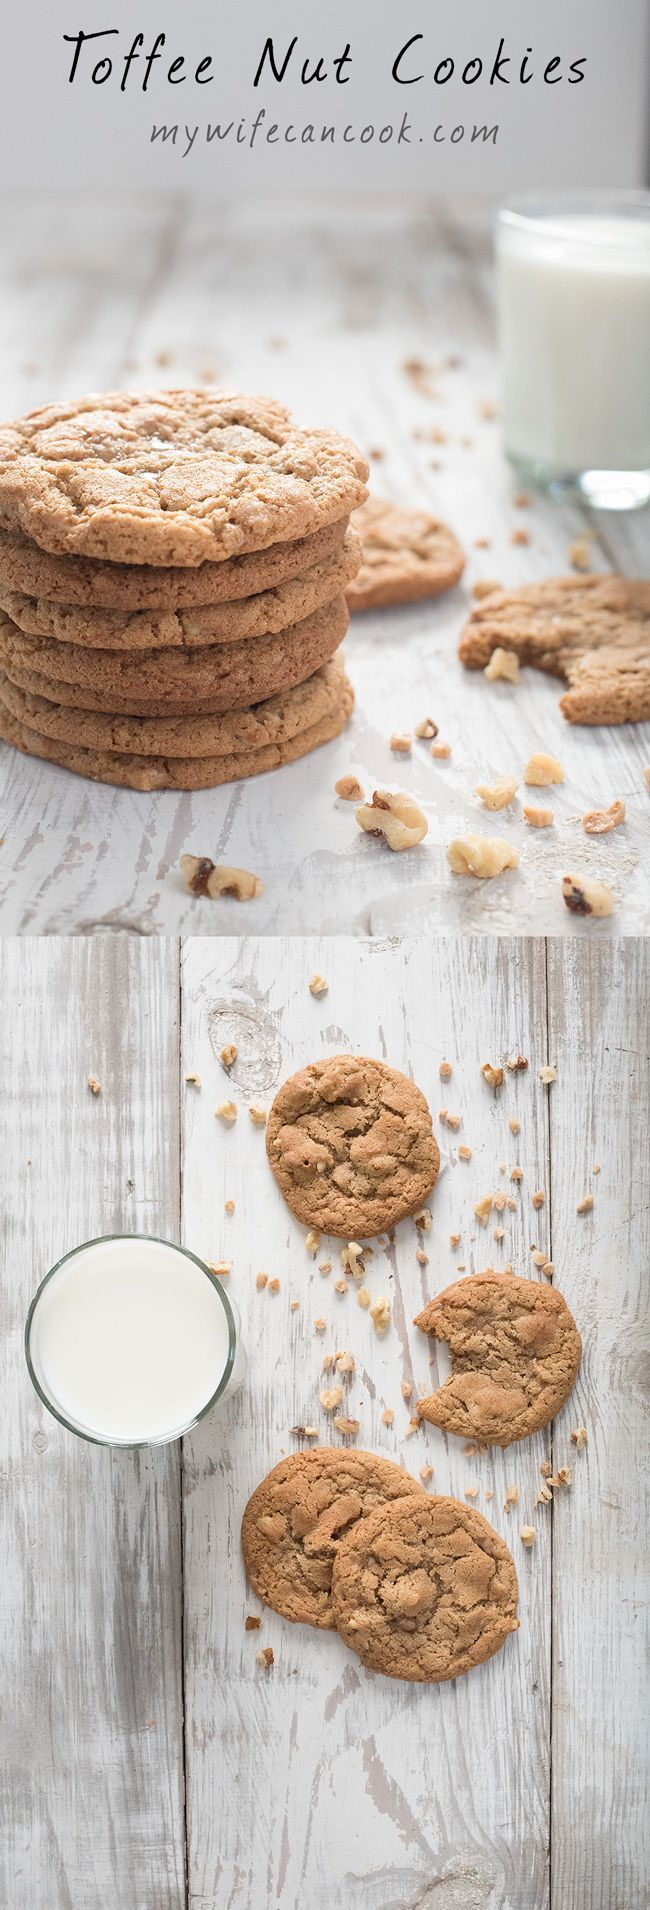 Toffee Nut cookies inspired by Panera Toffee Nut Cookies. In our house we really love the toffee flavor, and of course we love cookies. One of our favorite cookies of recent years has been the Panera Toffee Nut cookie, but when it recently disappeared fro